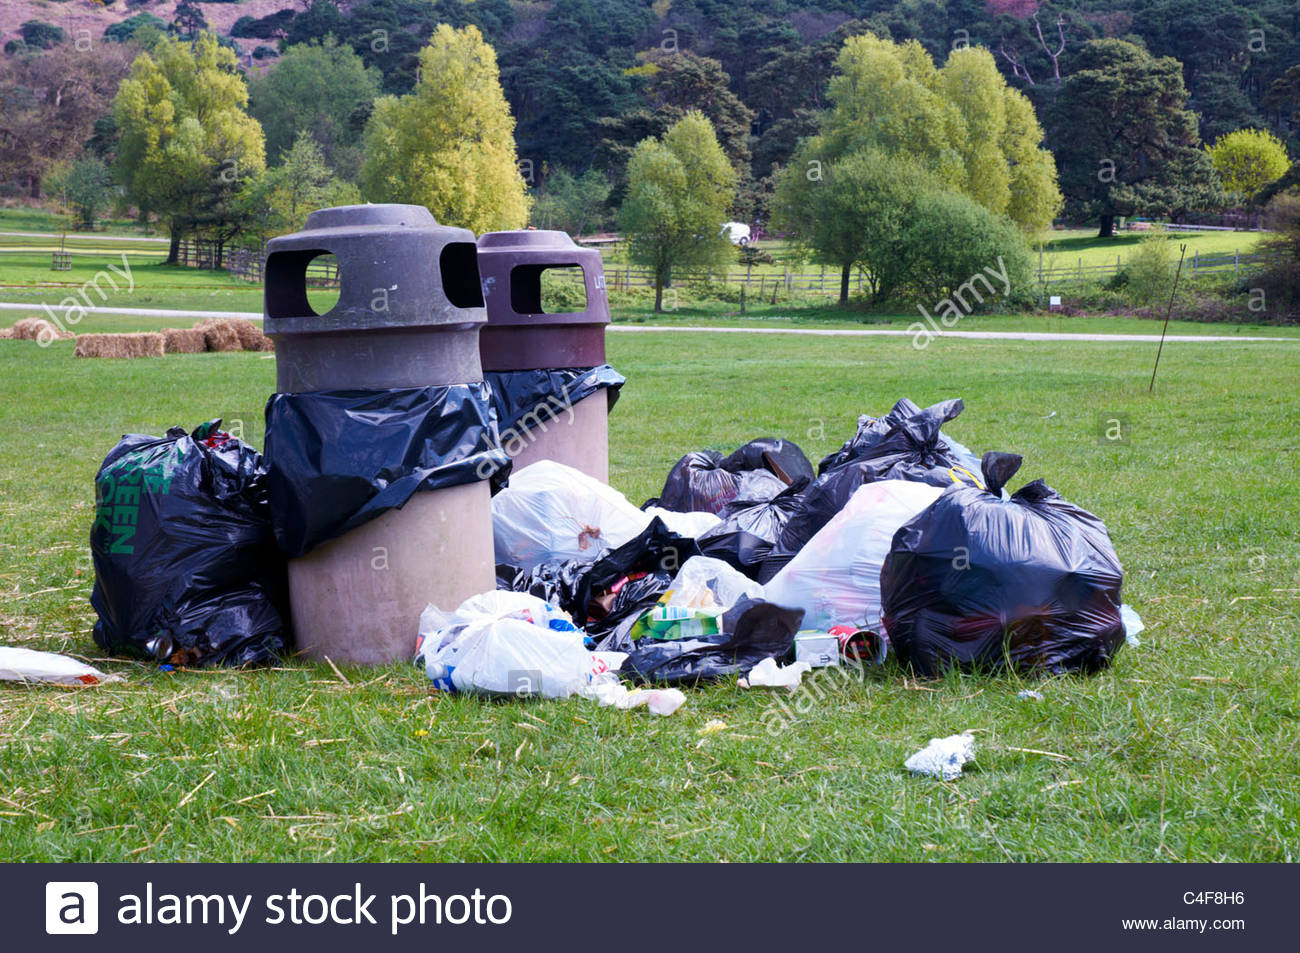 a pile of black plastic rubbish bags and two rubbish bins awaiting refuge collection in a country park - Stock Image